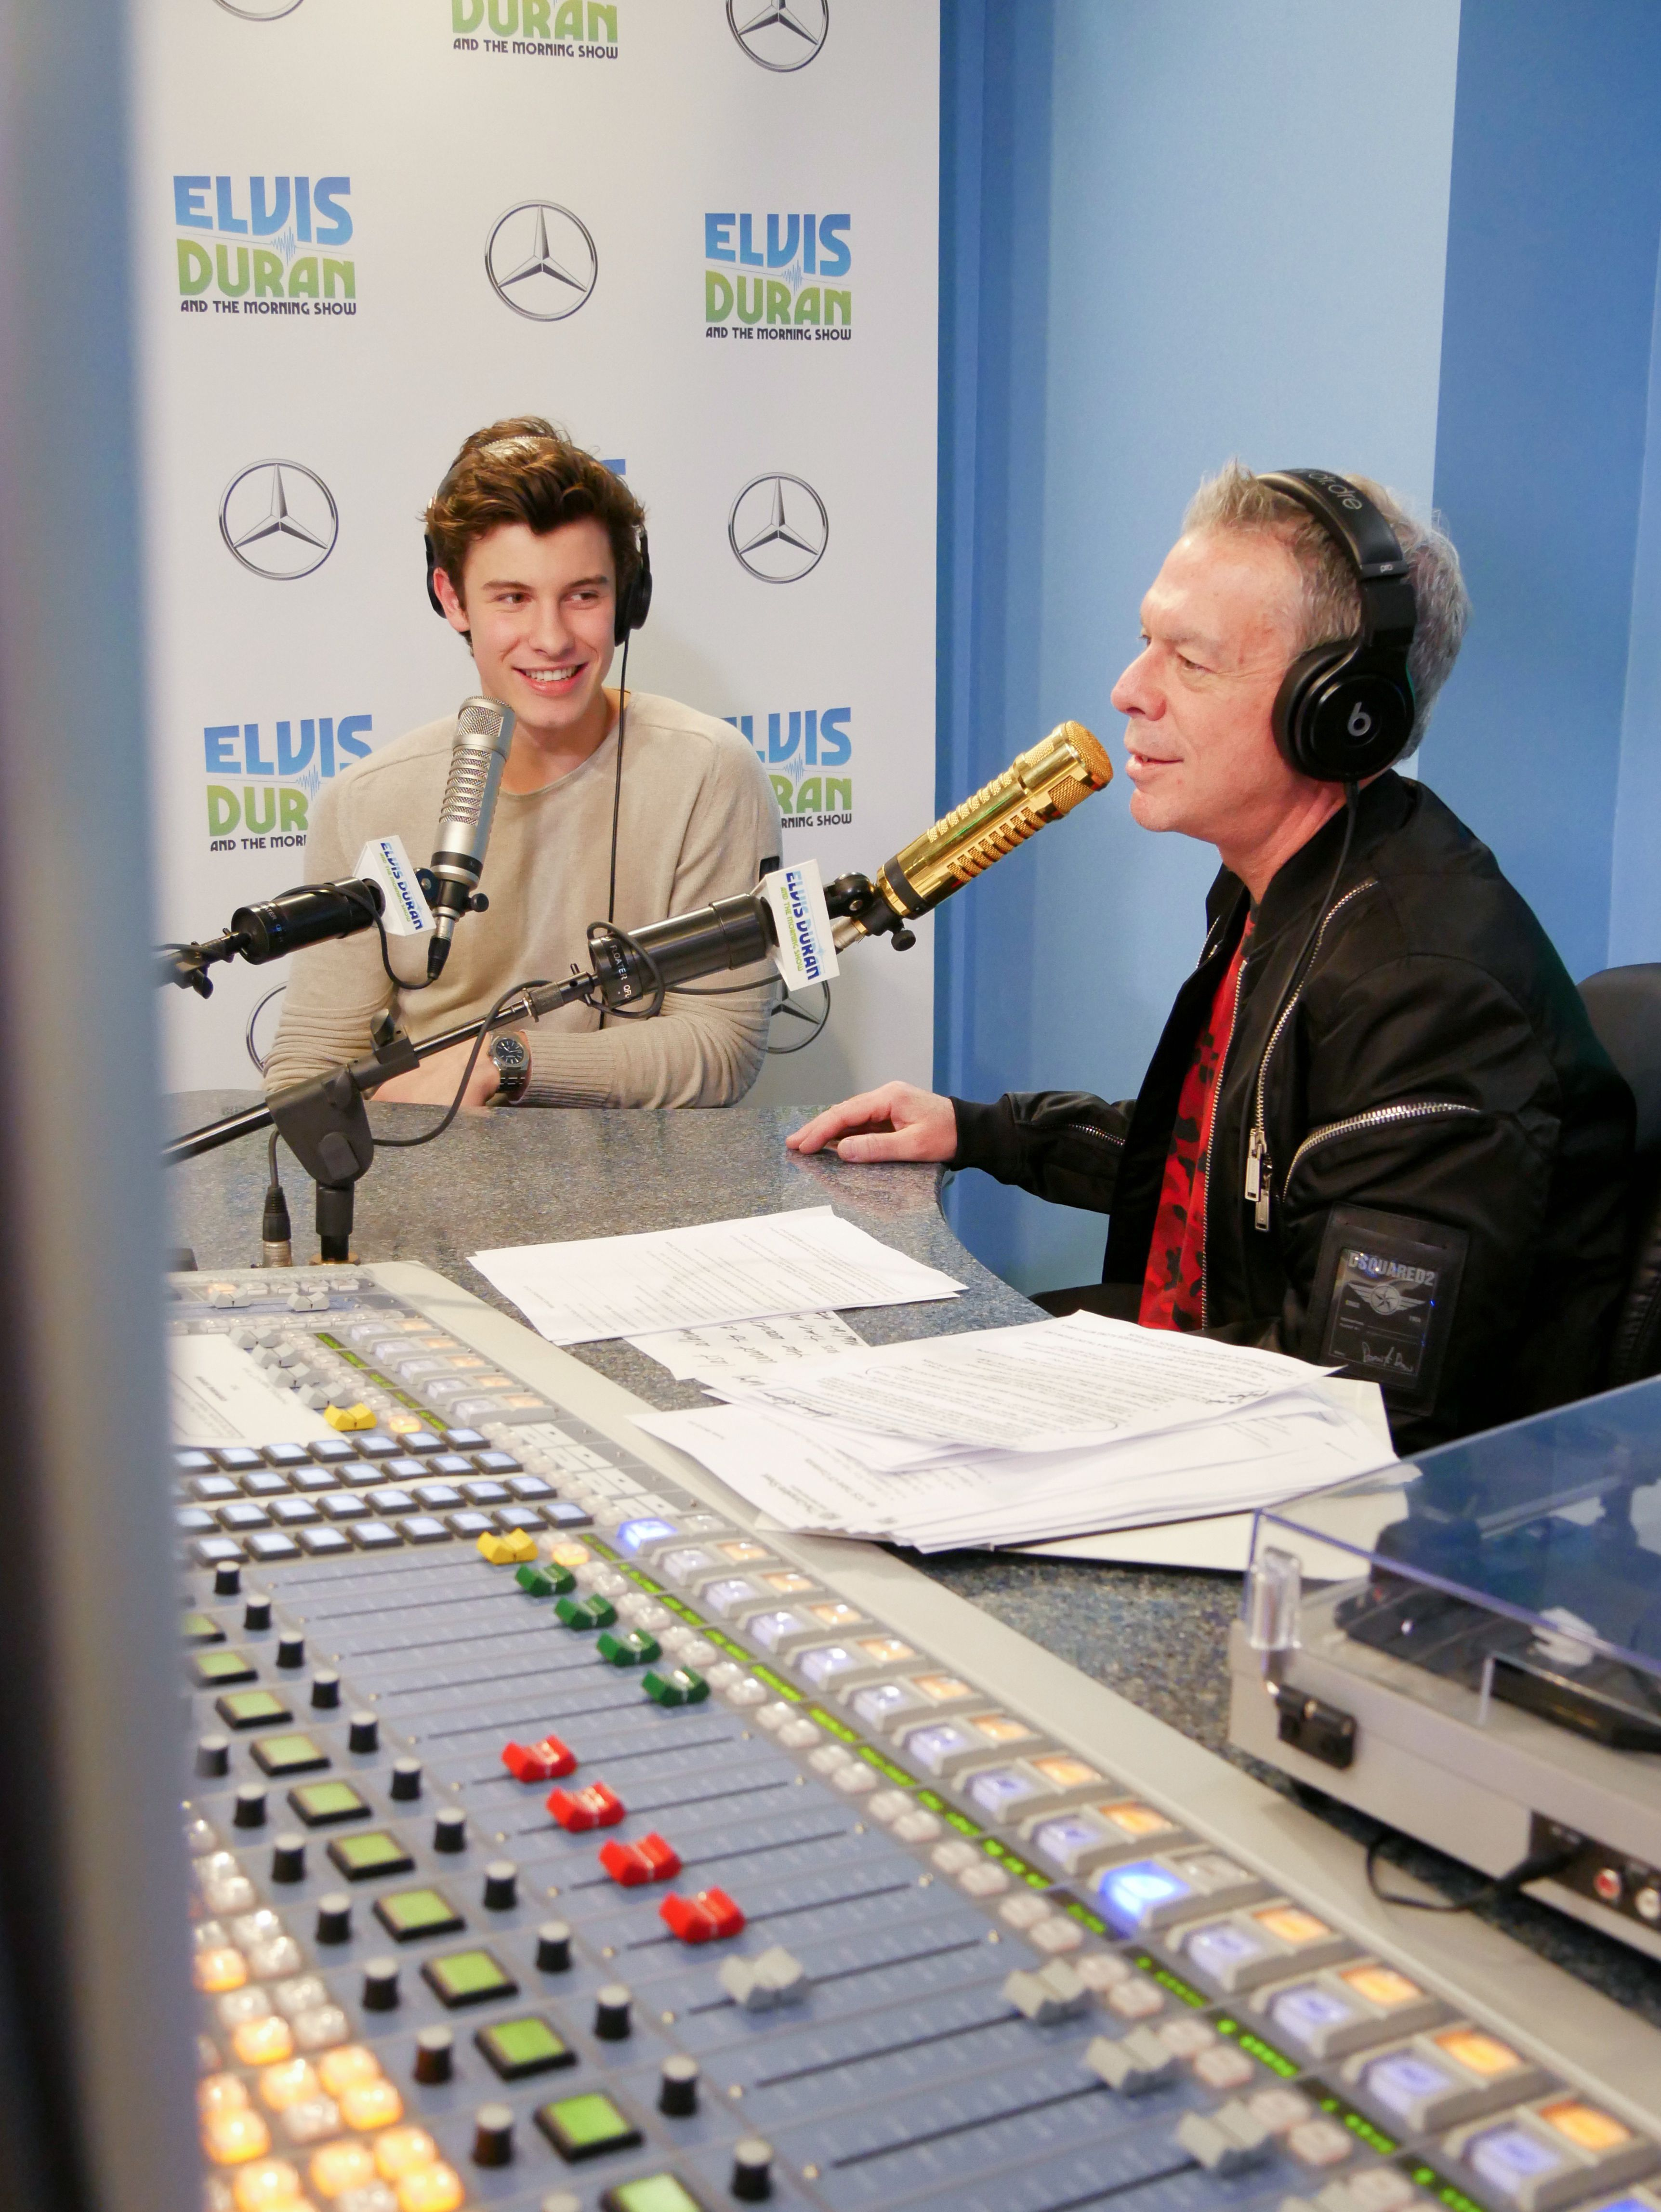 Shawn Mendes on Elvis Duran and the Morning Show | Shawn